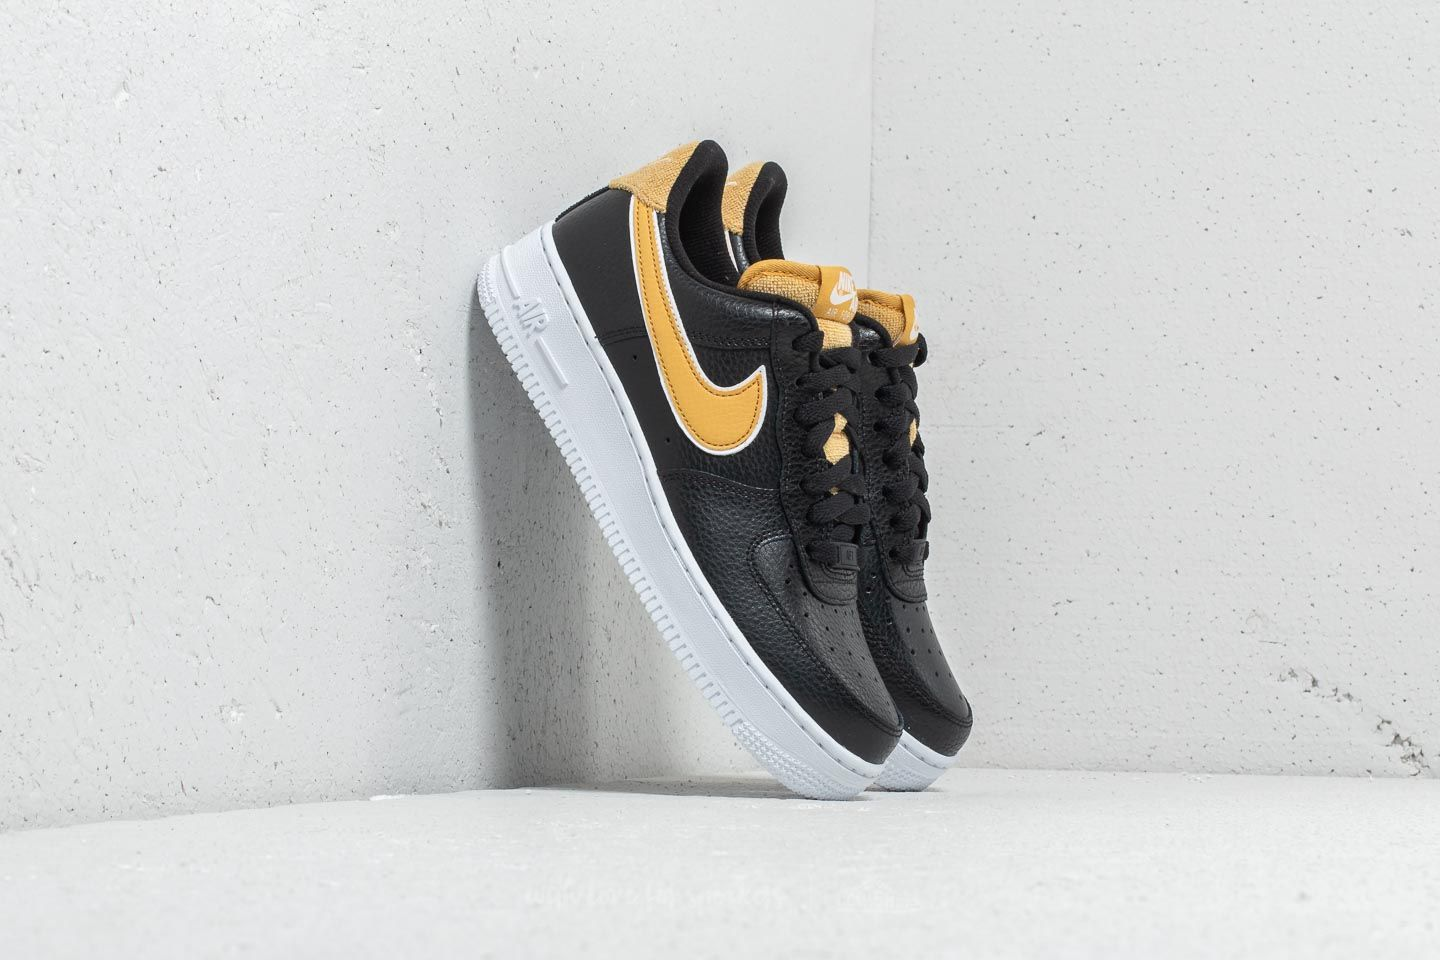 267b5f5c47bea Nike Wmns Air Force 1 '07 SE Black/ Wheat Gold | Footshop